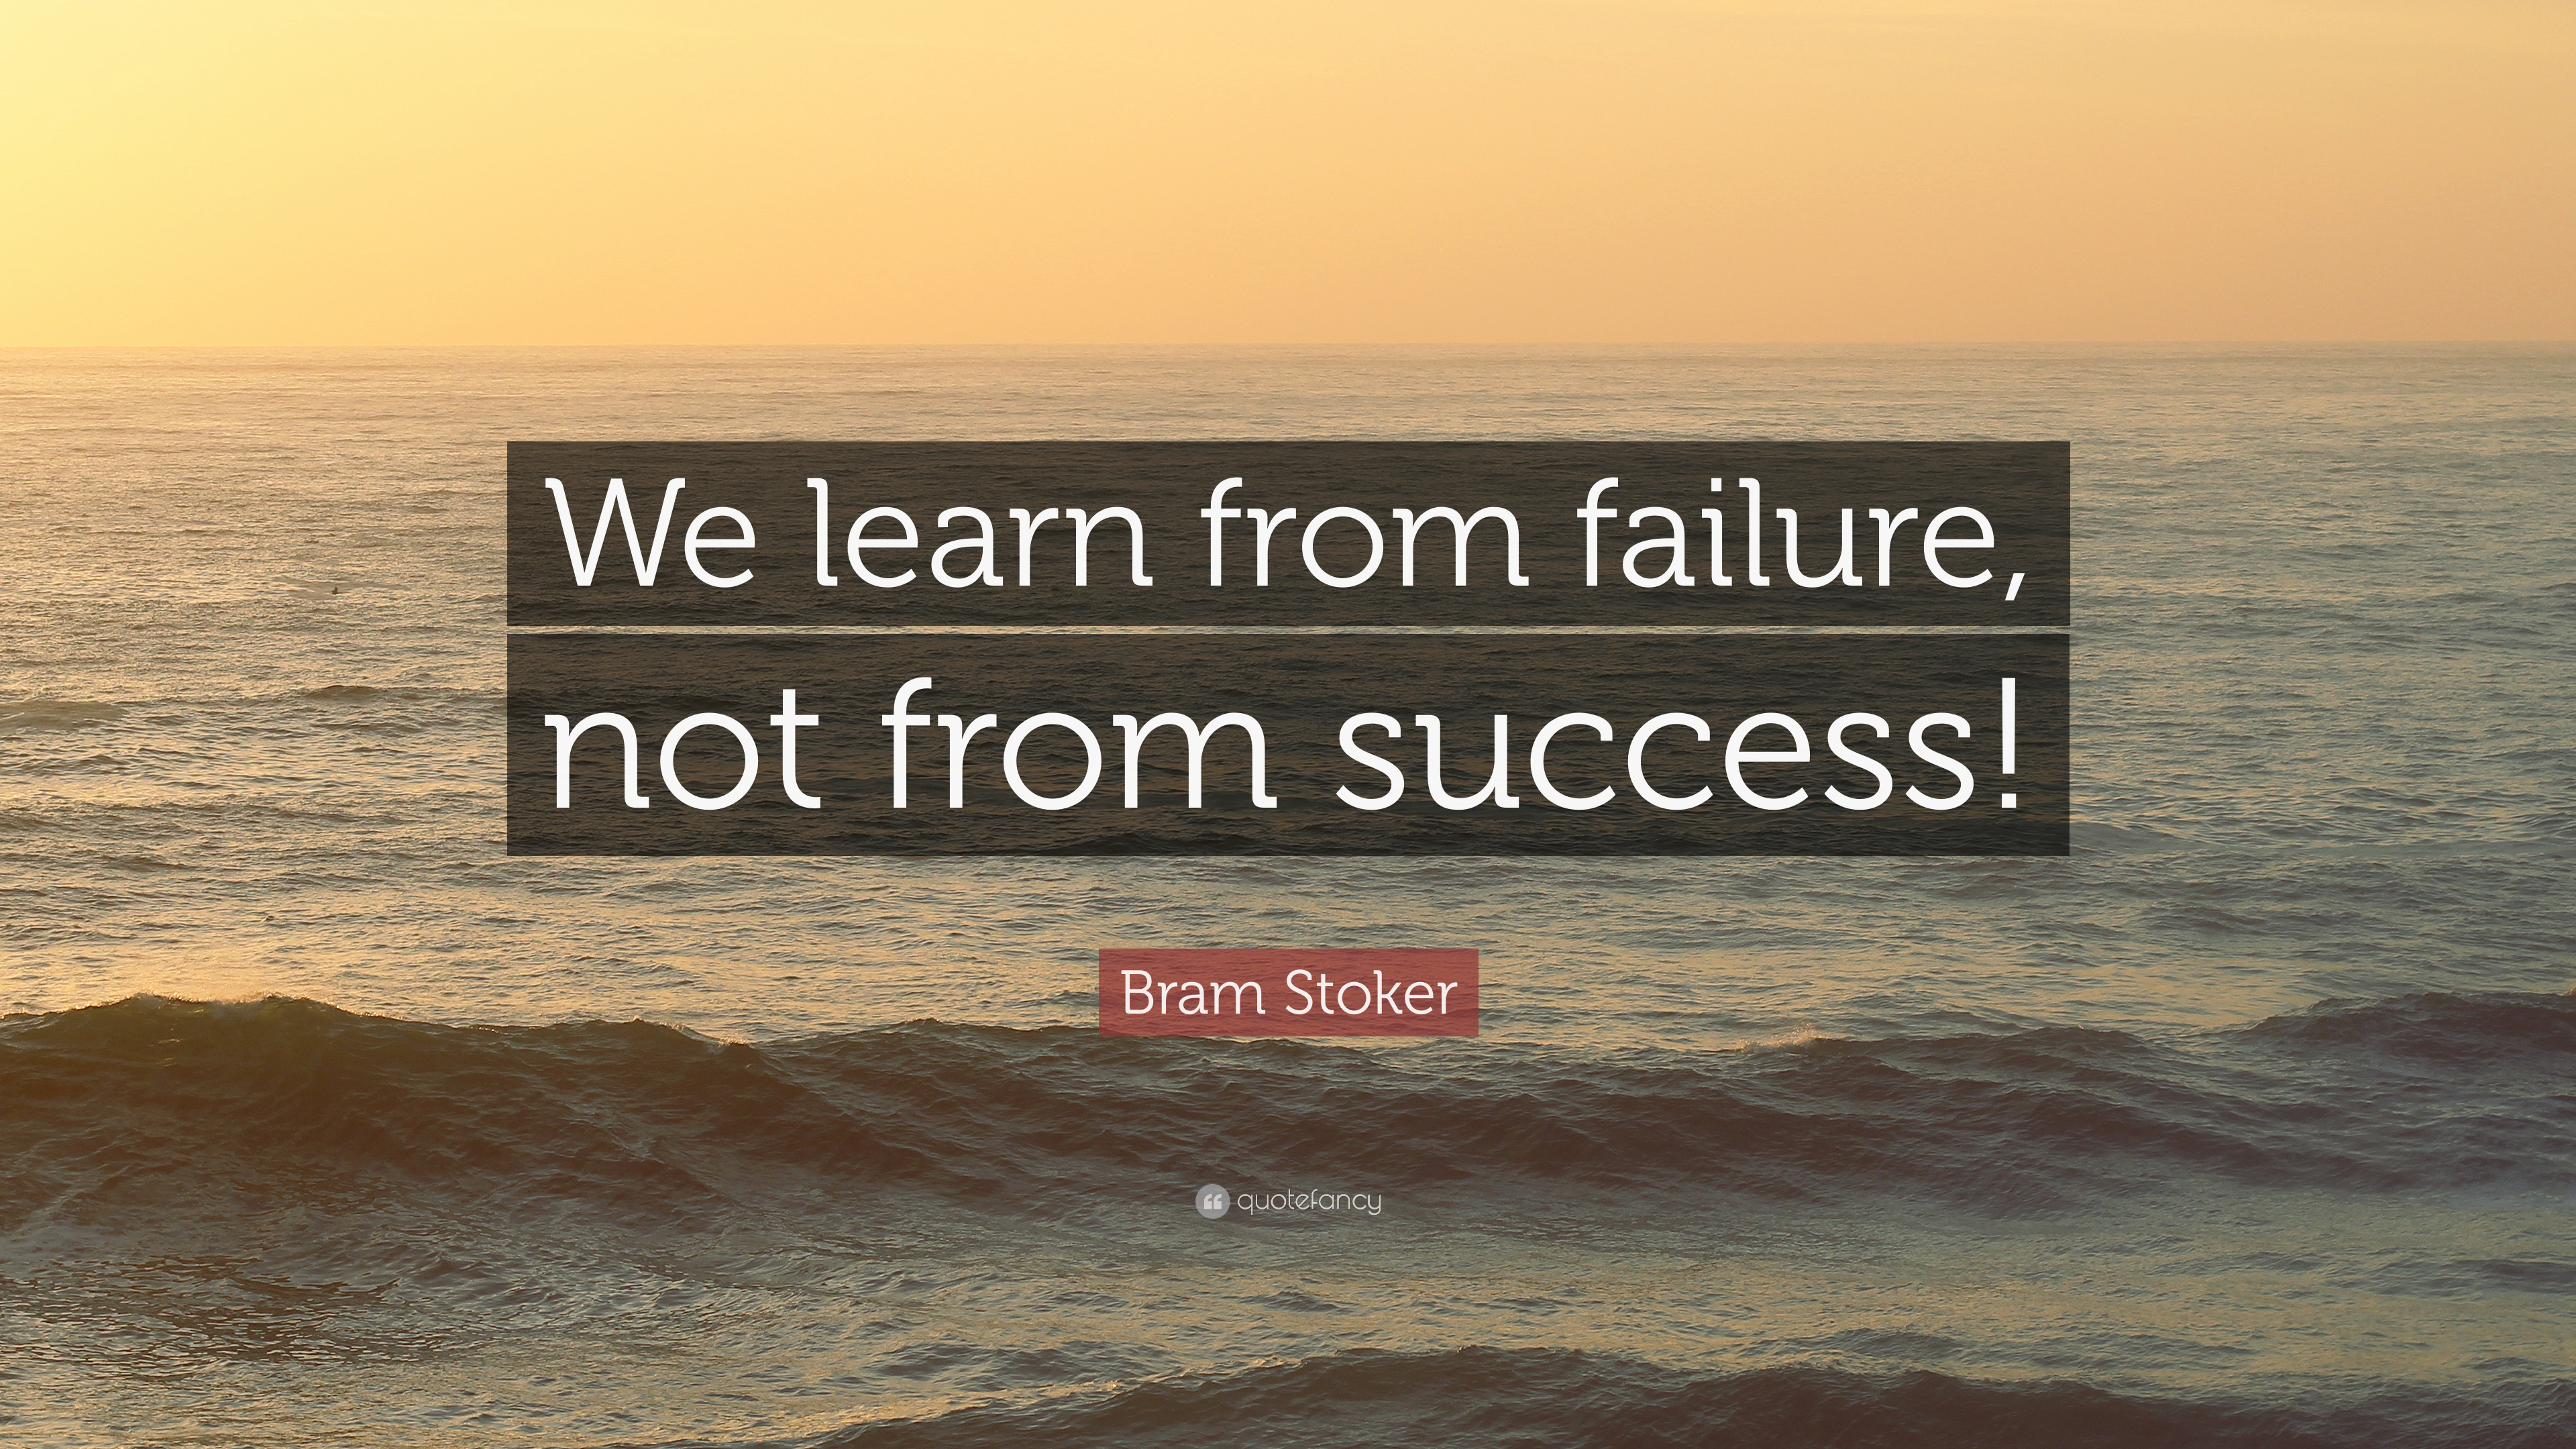 we learn from failure not success We learn from failure, not from success we learn from failure, not from success pinterest explore instructional design, inspiration quotes, and more success learning articulate community weekly challenge: instructional design tips that really pop.